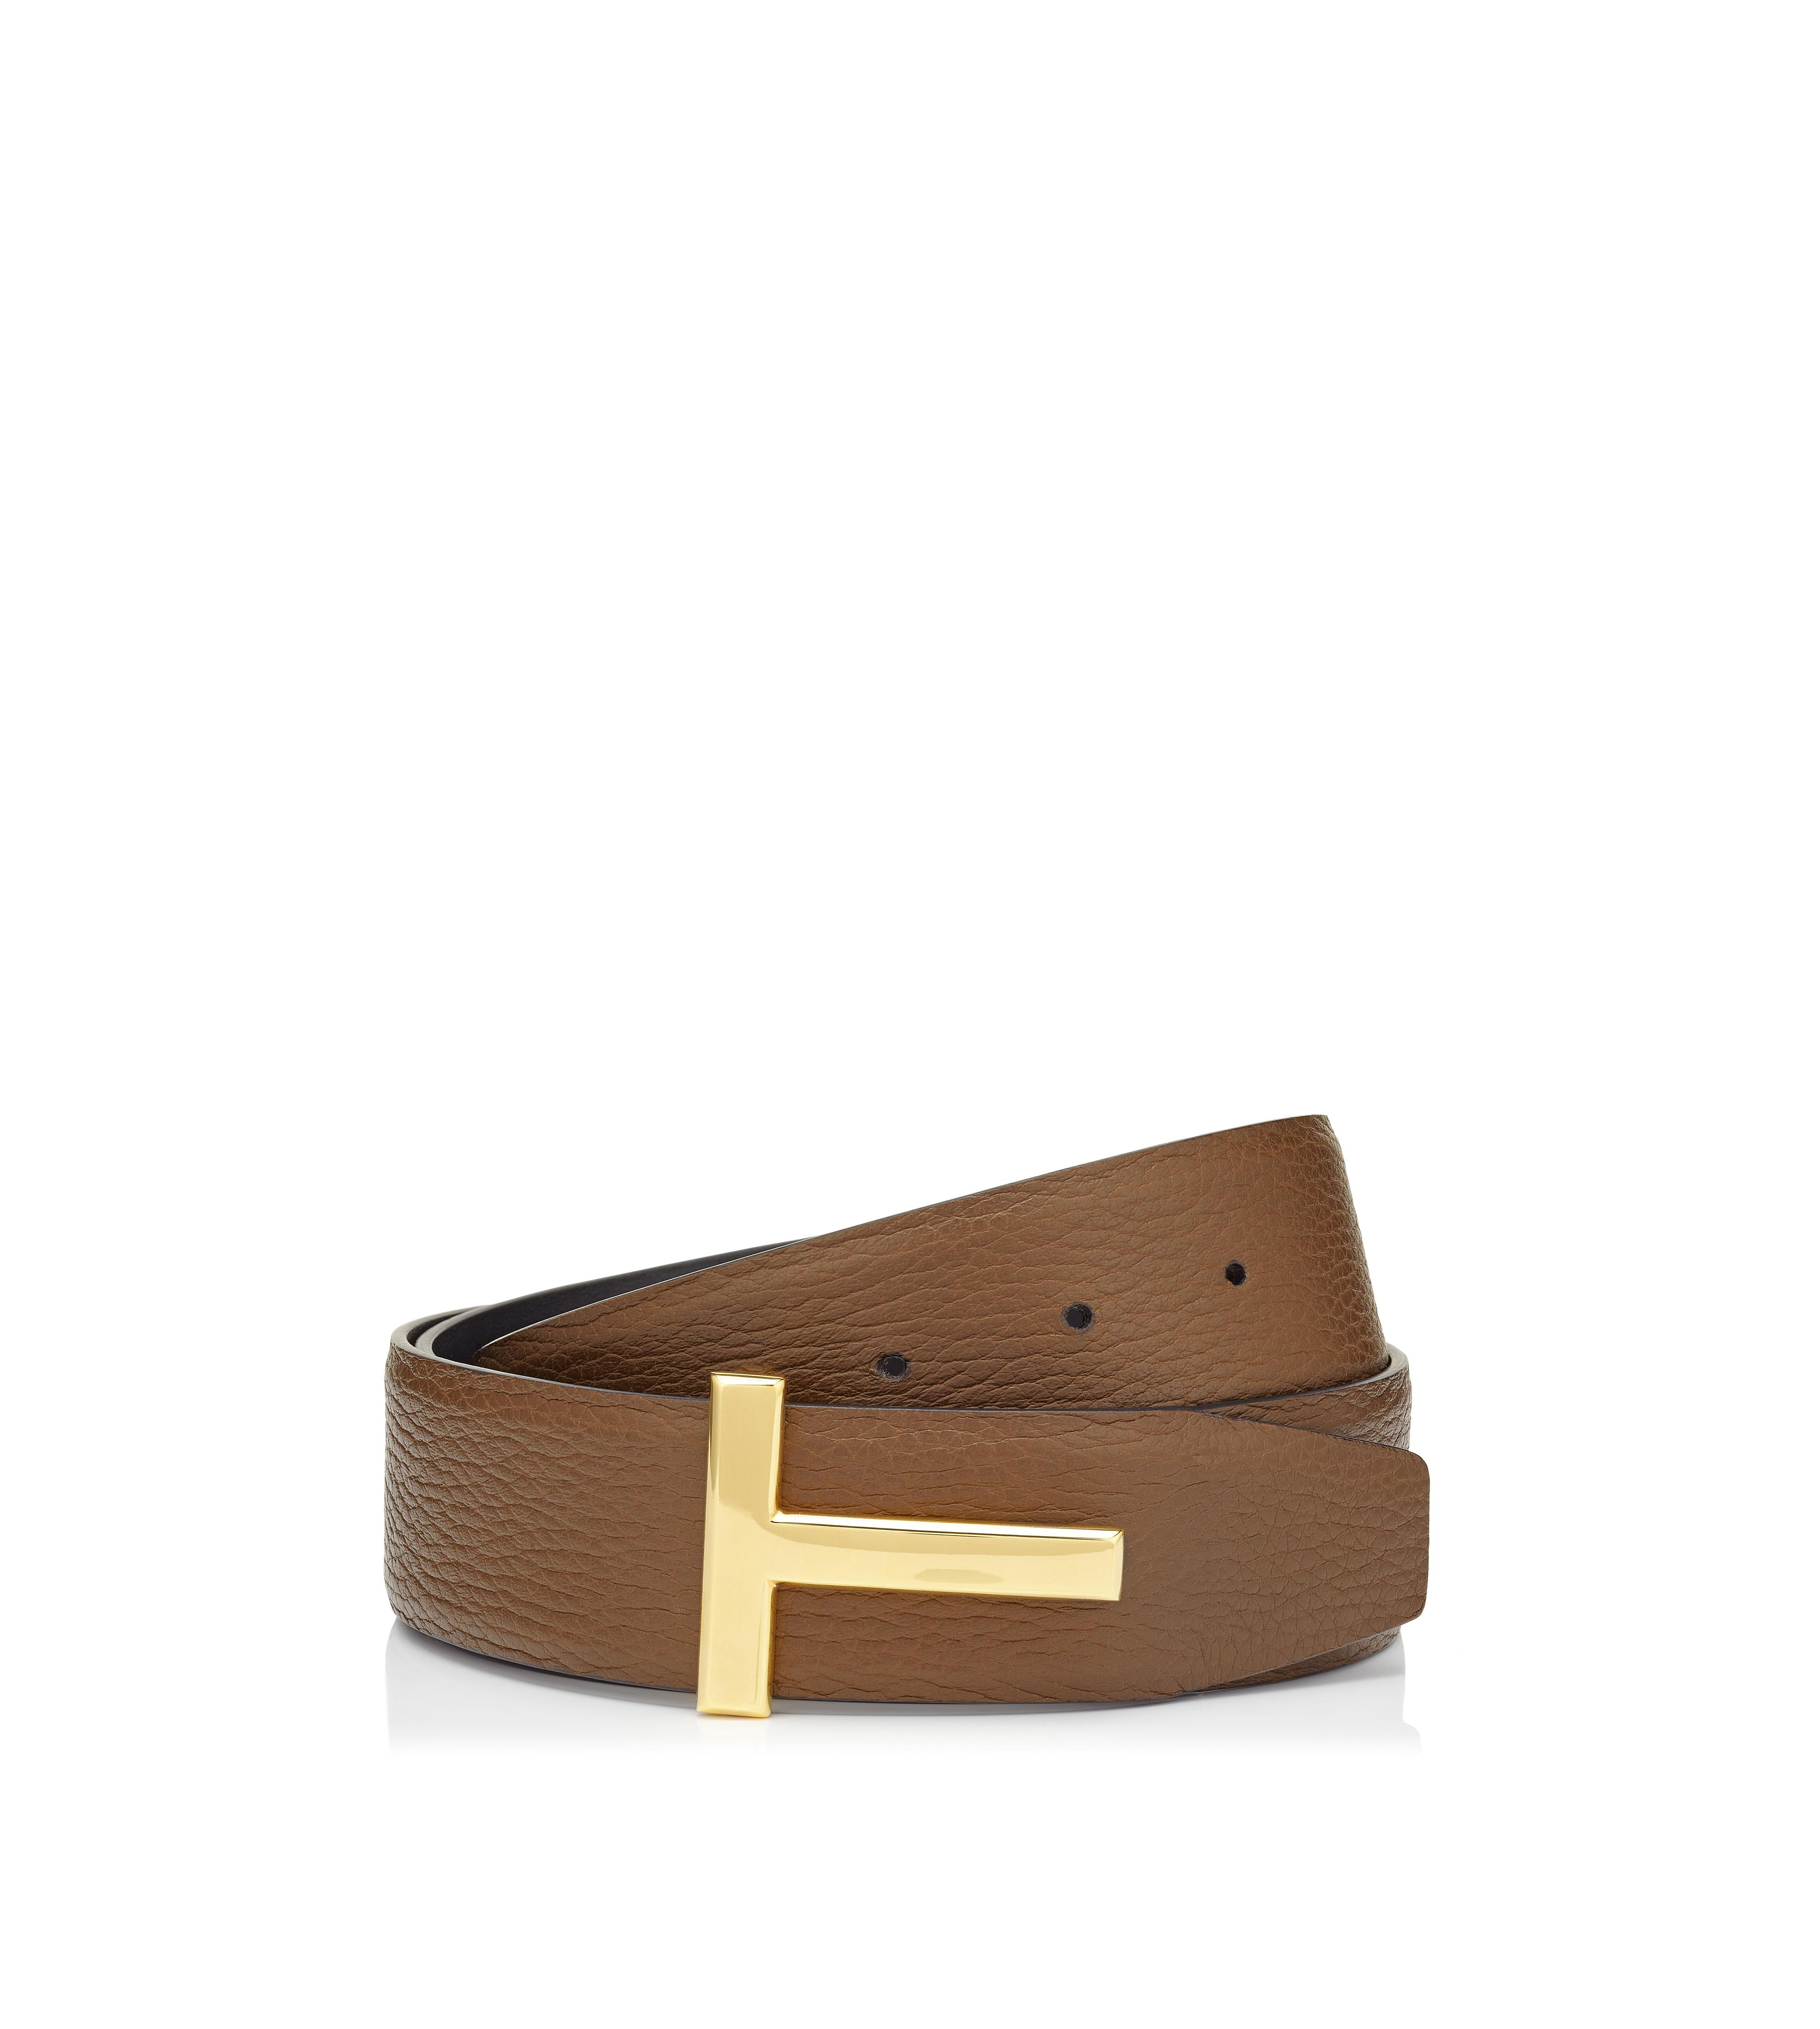 T BUCKLE REVERSIBLE BELT WITH GOLD BUCKLE A thumbnail